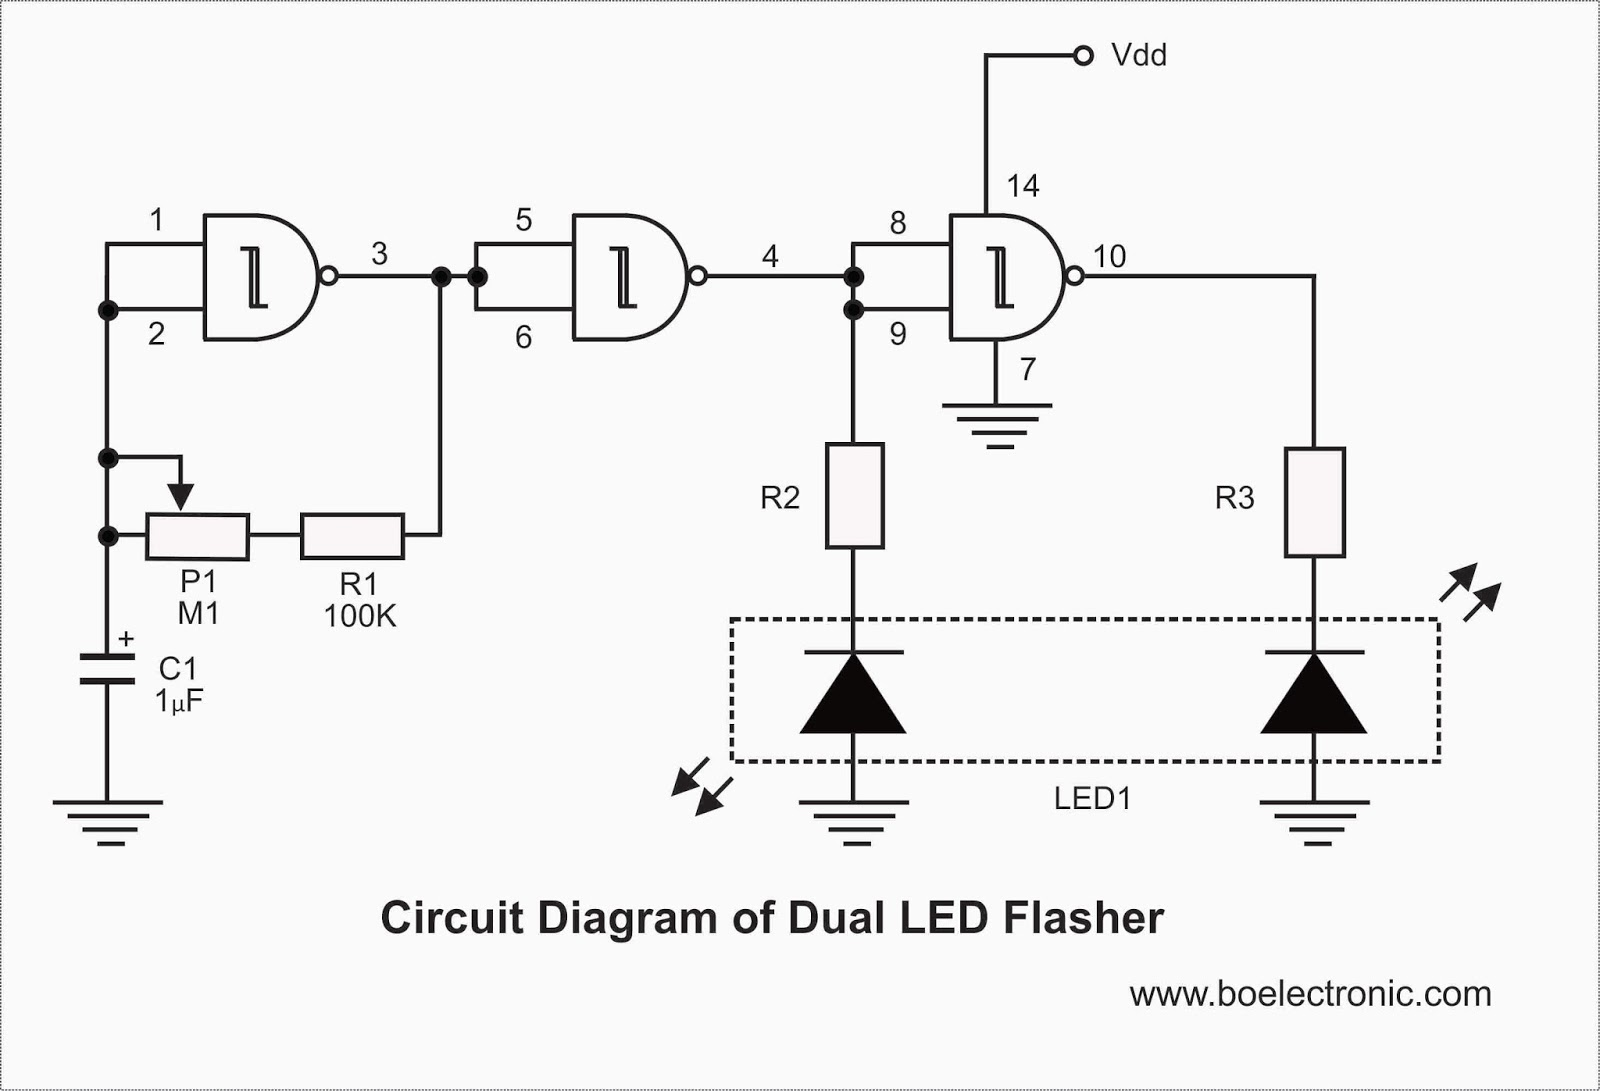 12v Flashing Led Circuit Giftsforsubs Flasher By Ic 4011 Wiring Diagrams 12 Volt Diagram